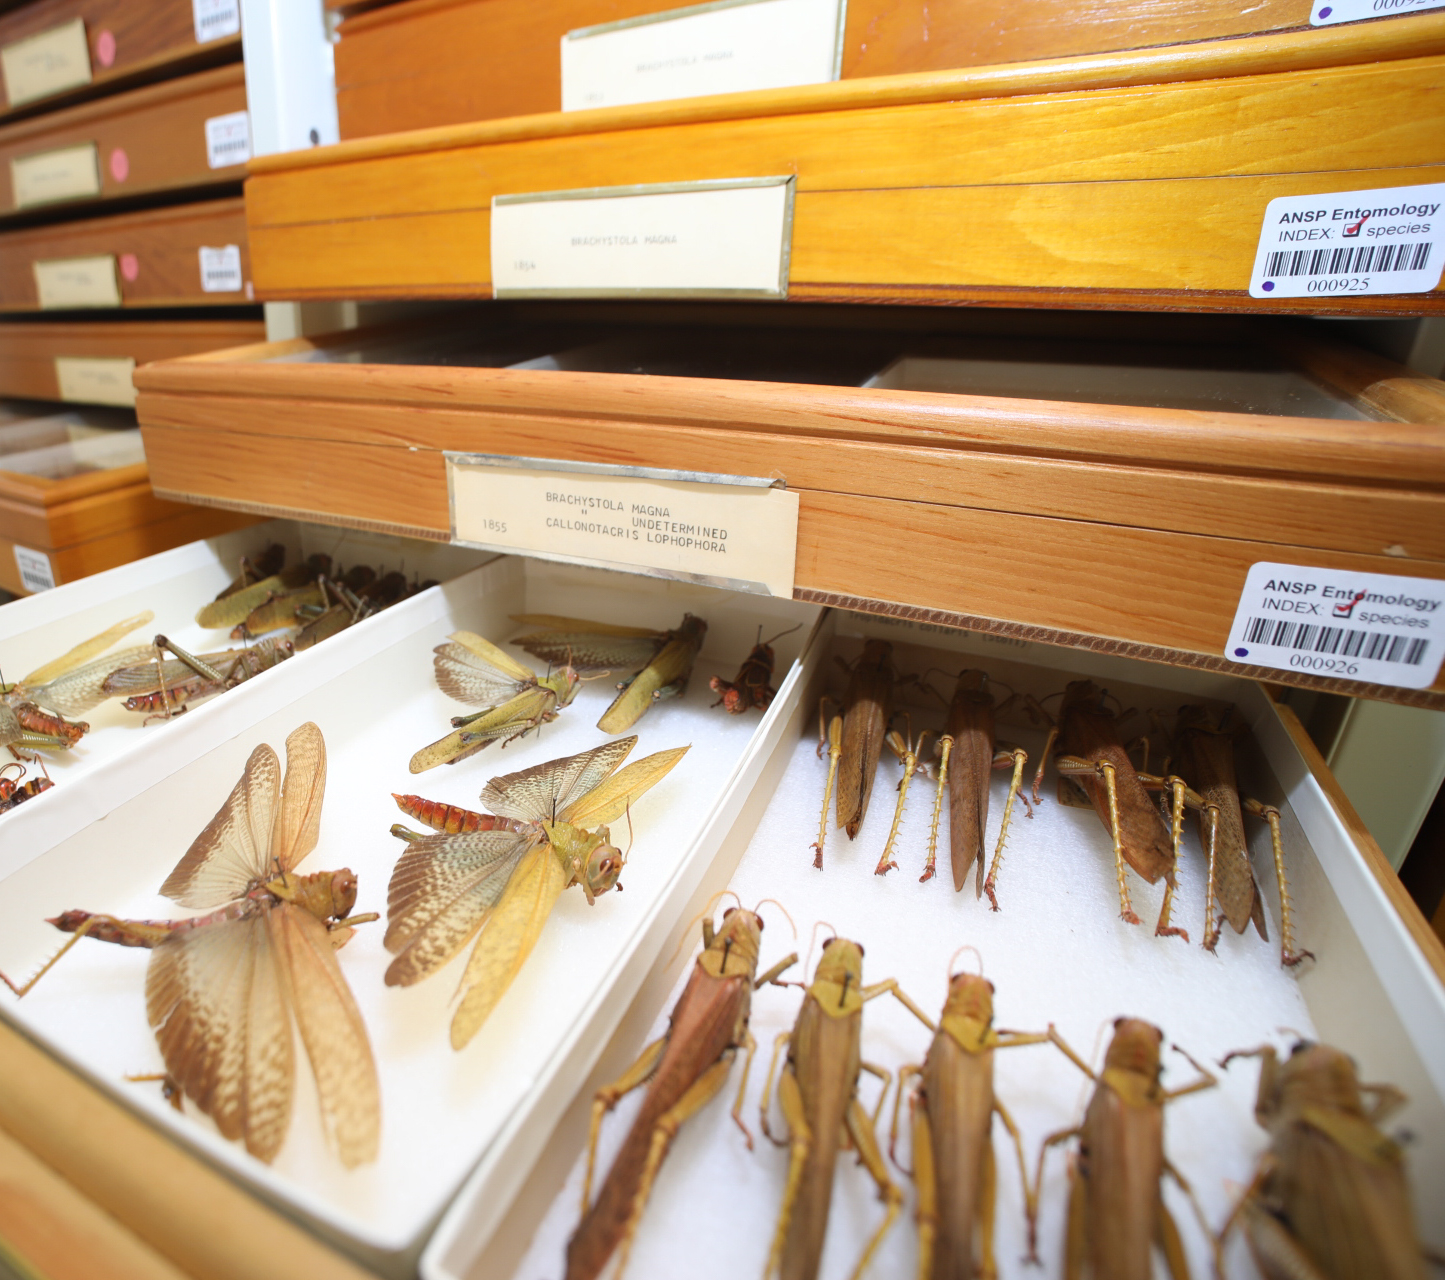 Betancourt_ansp_entomology_orthoptera_drawers